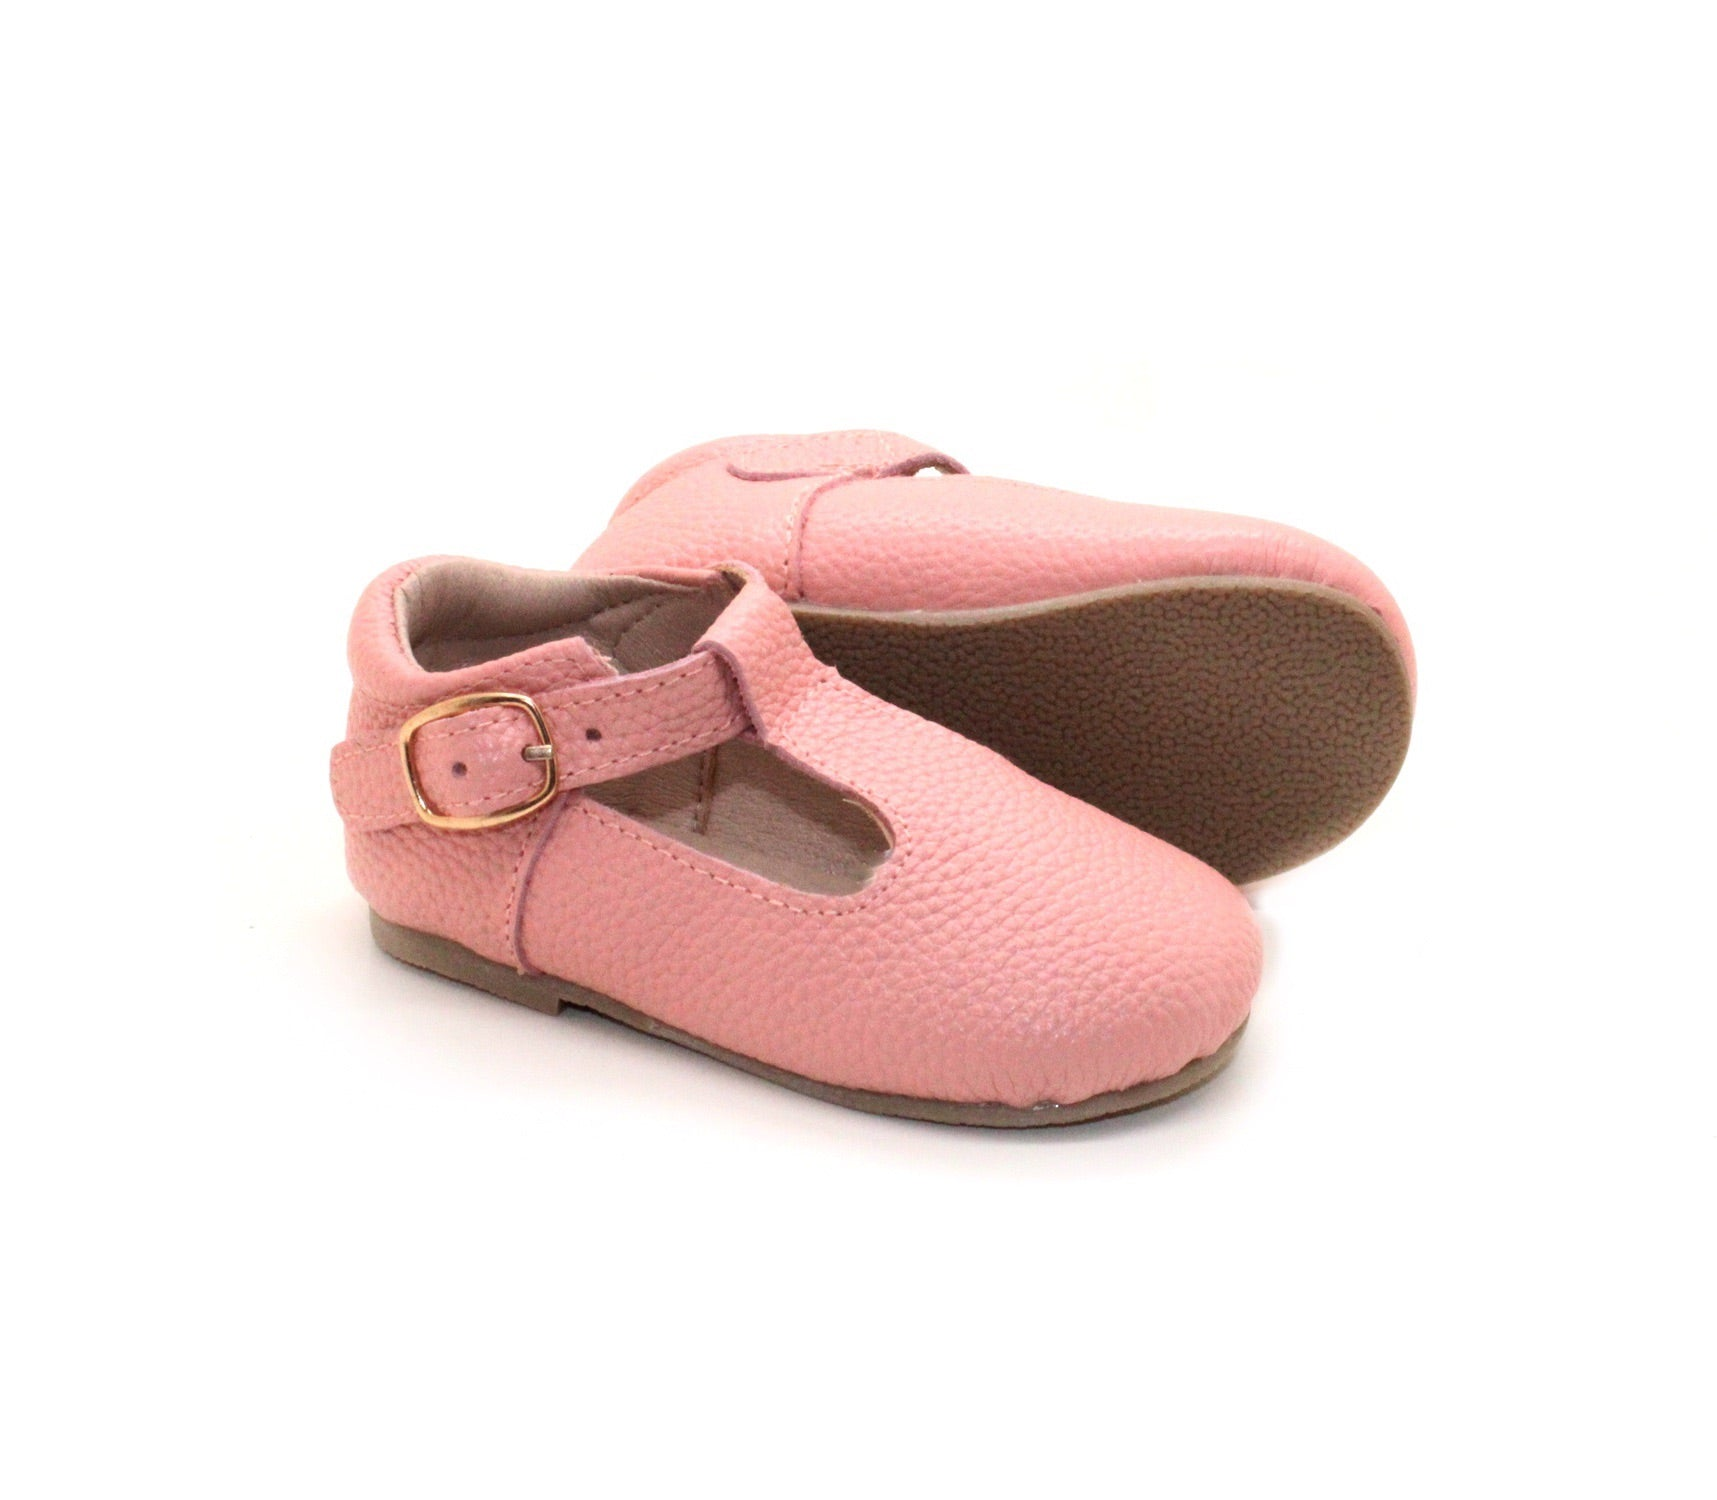 Mary Jane Hard Sole - Peony Pink